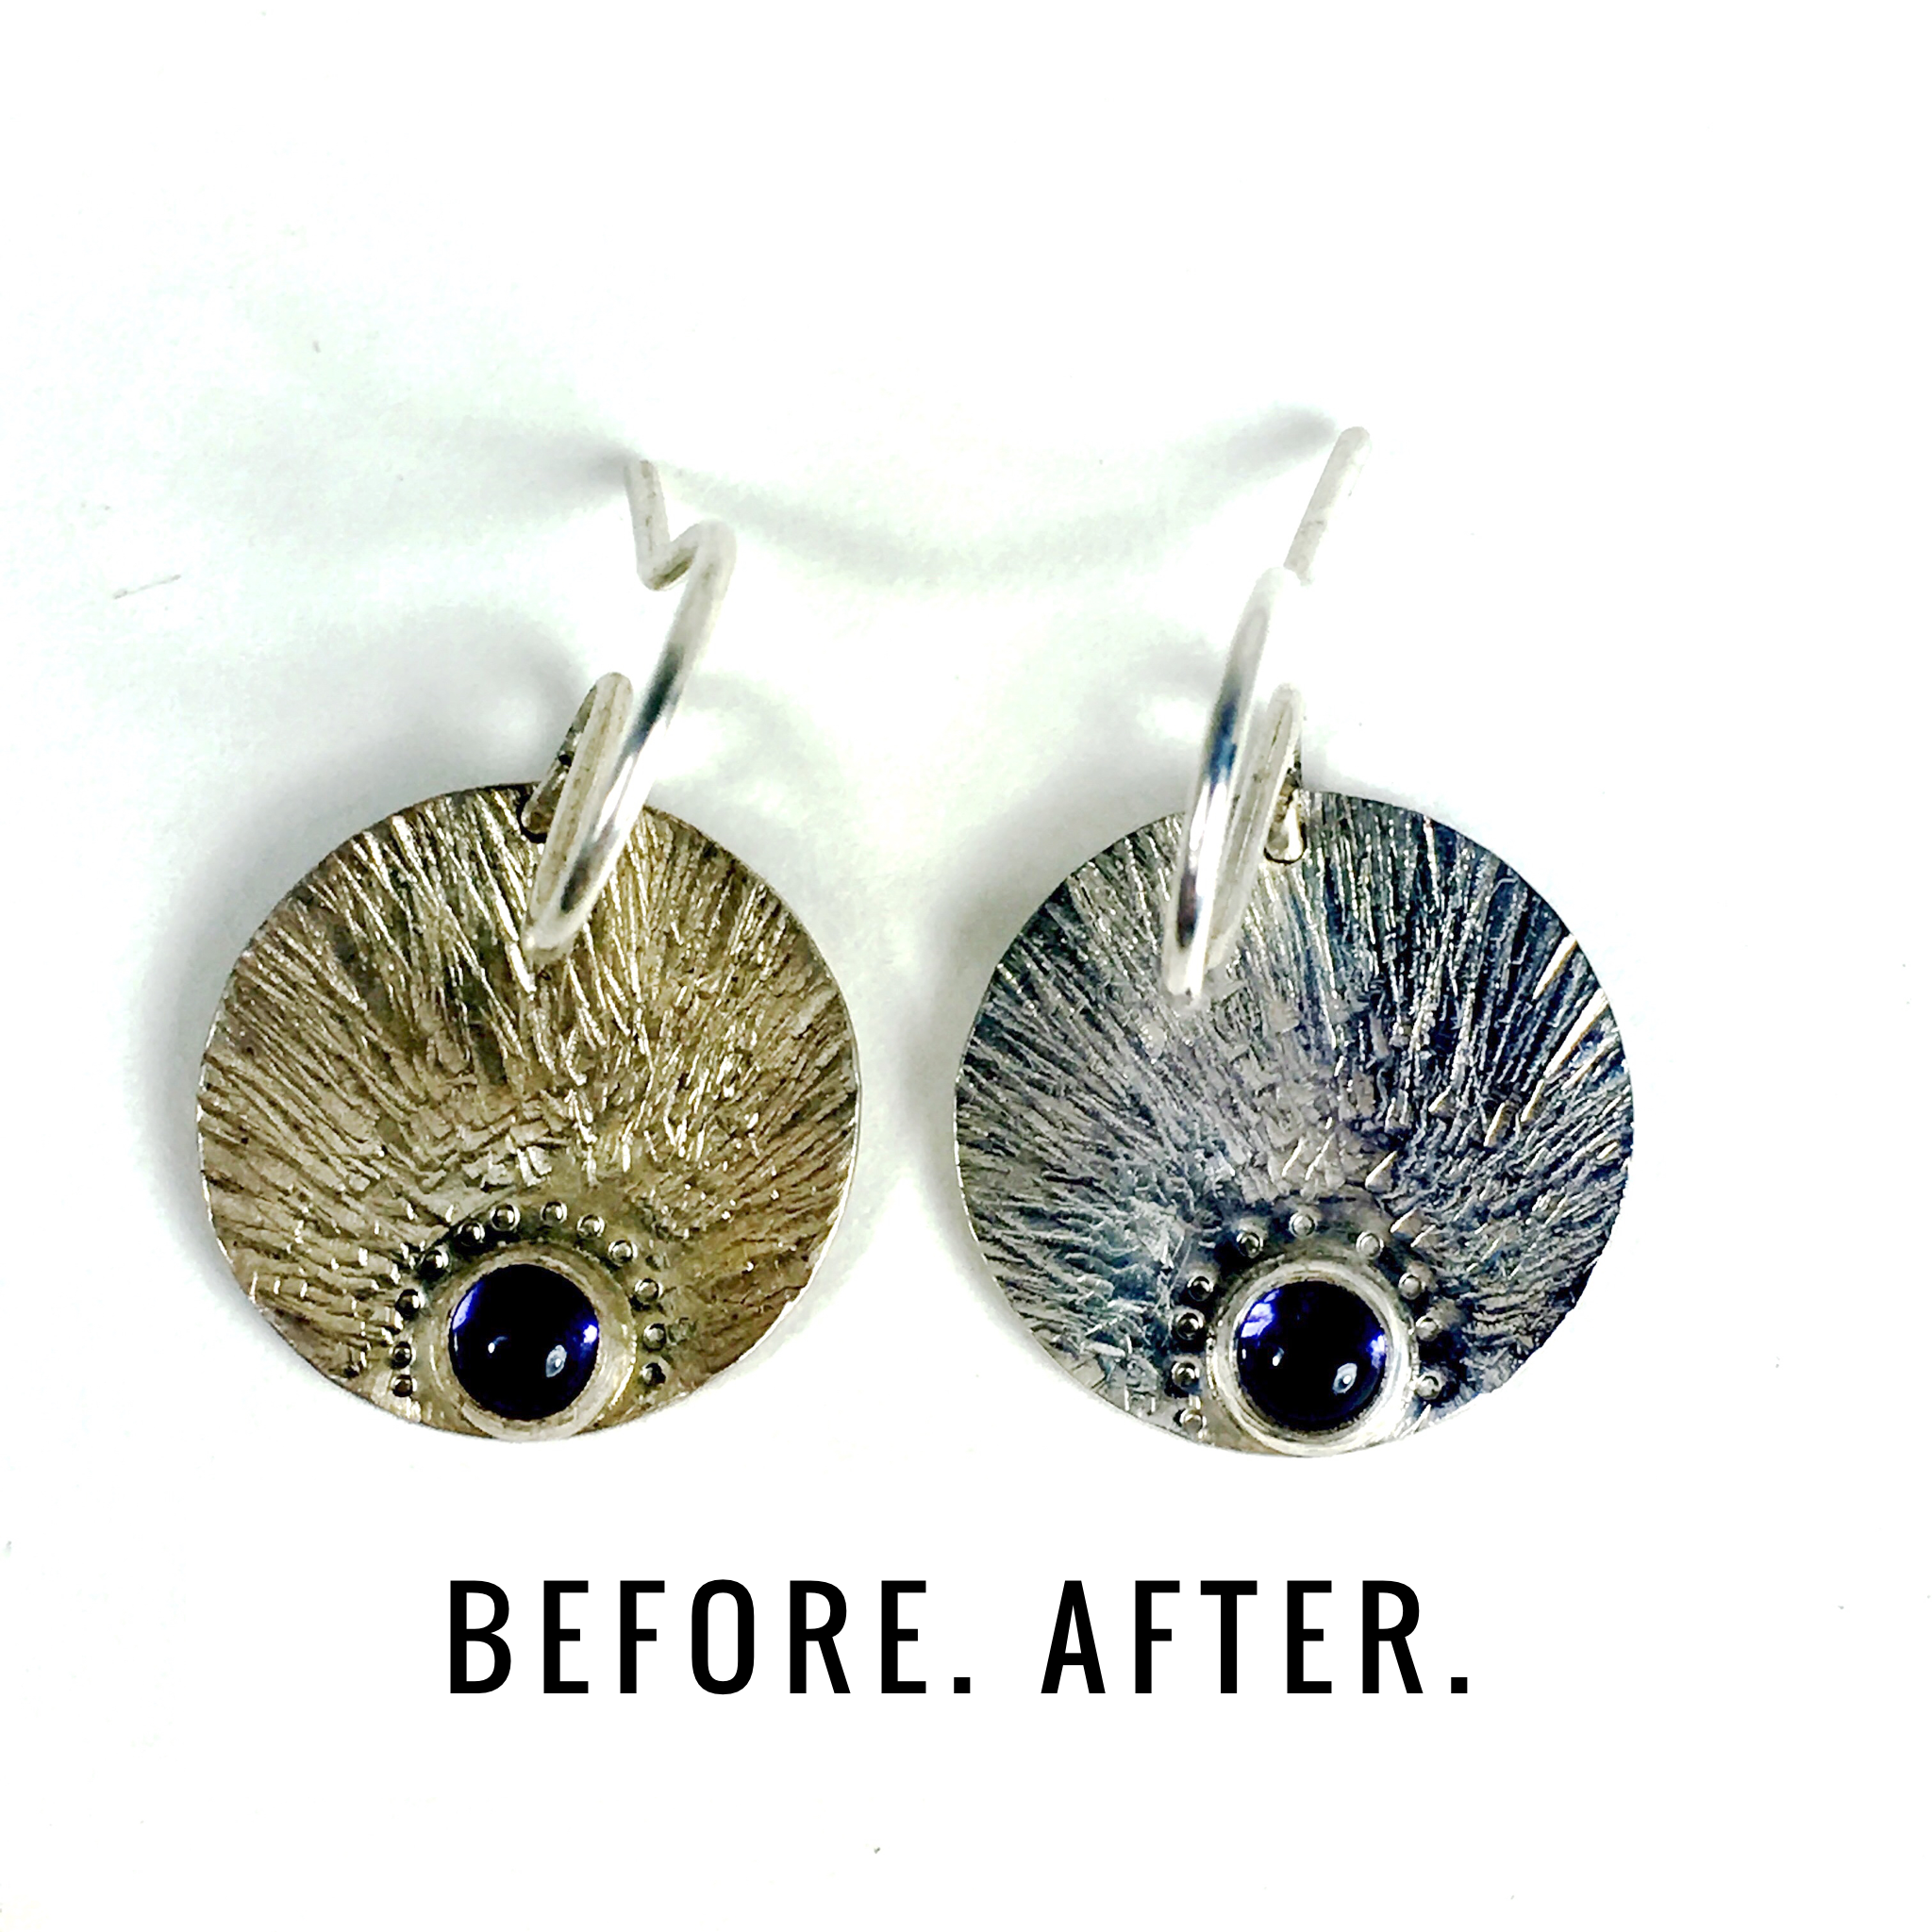 Results for a sterling silver earring, after a little work with the polishing cloth.